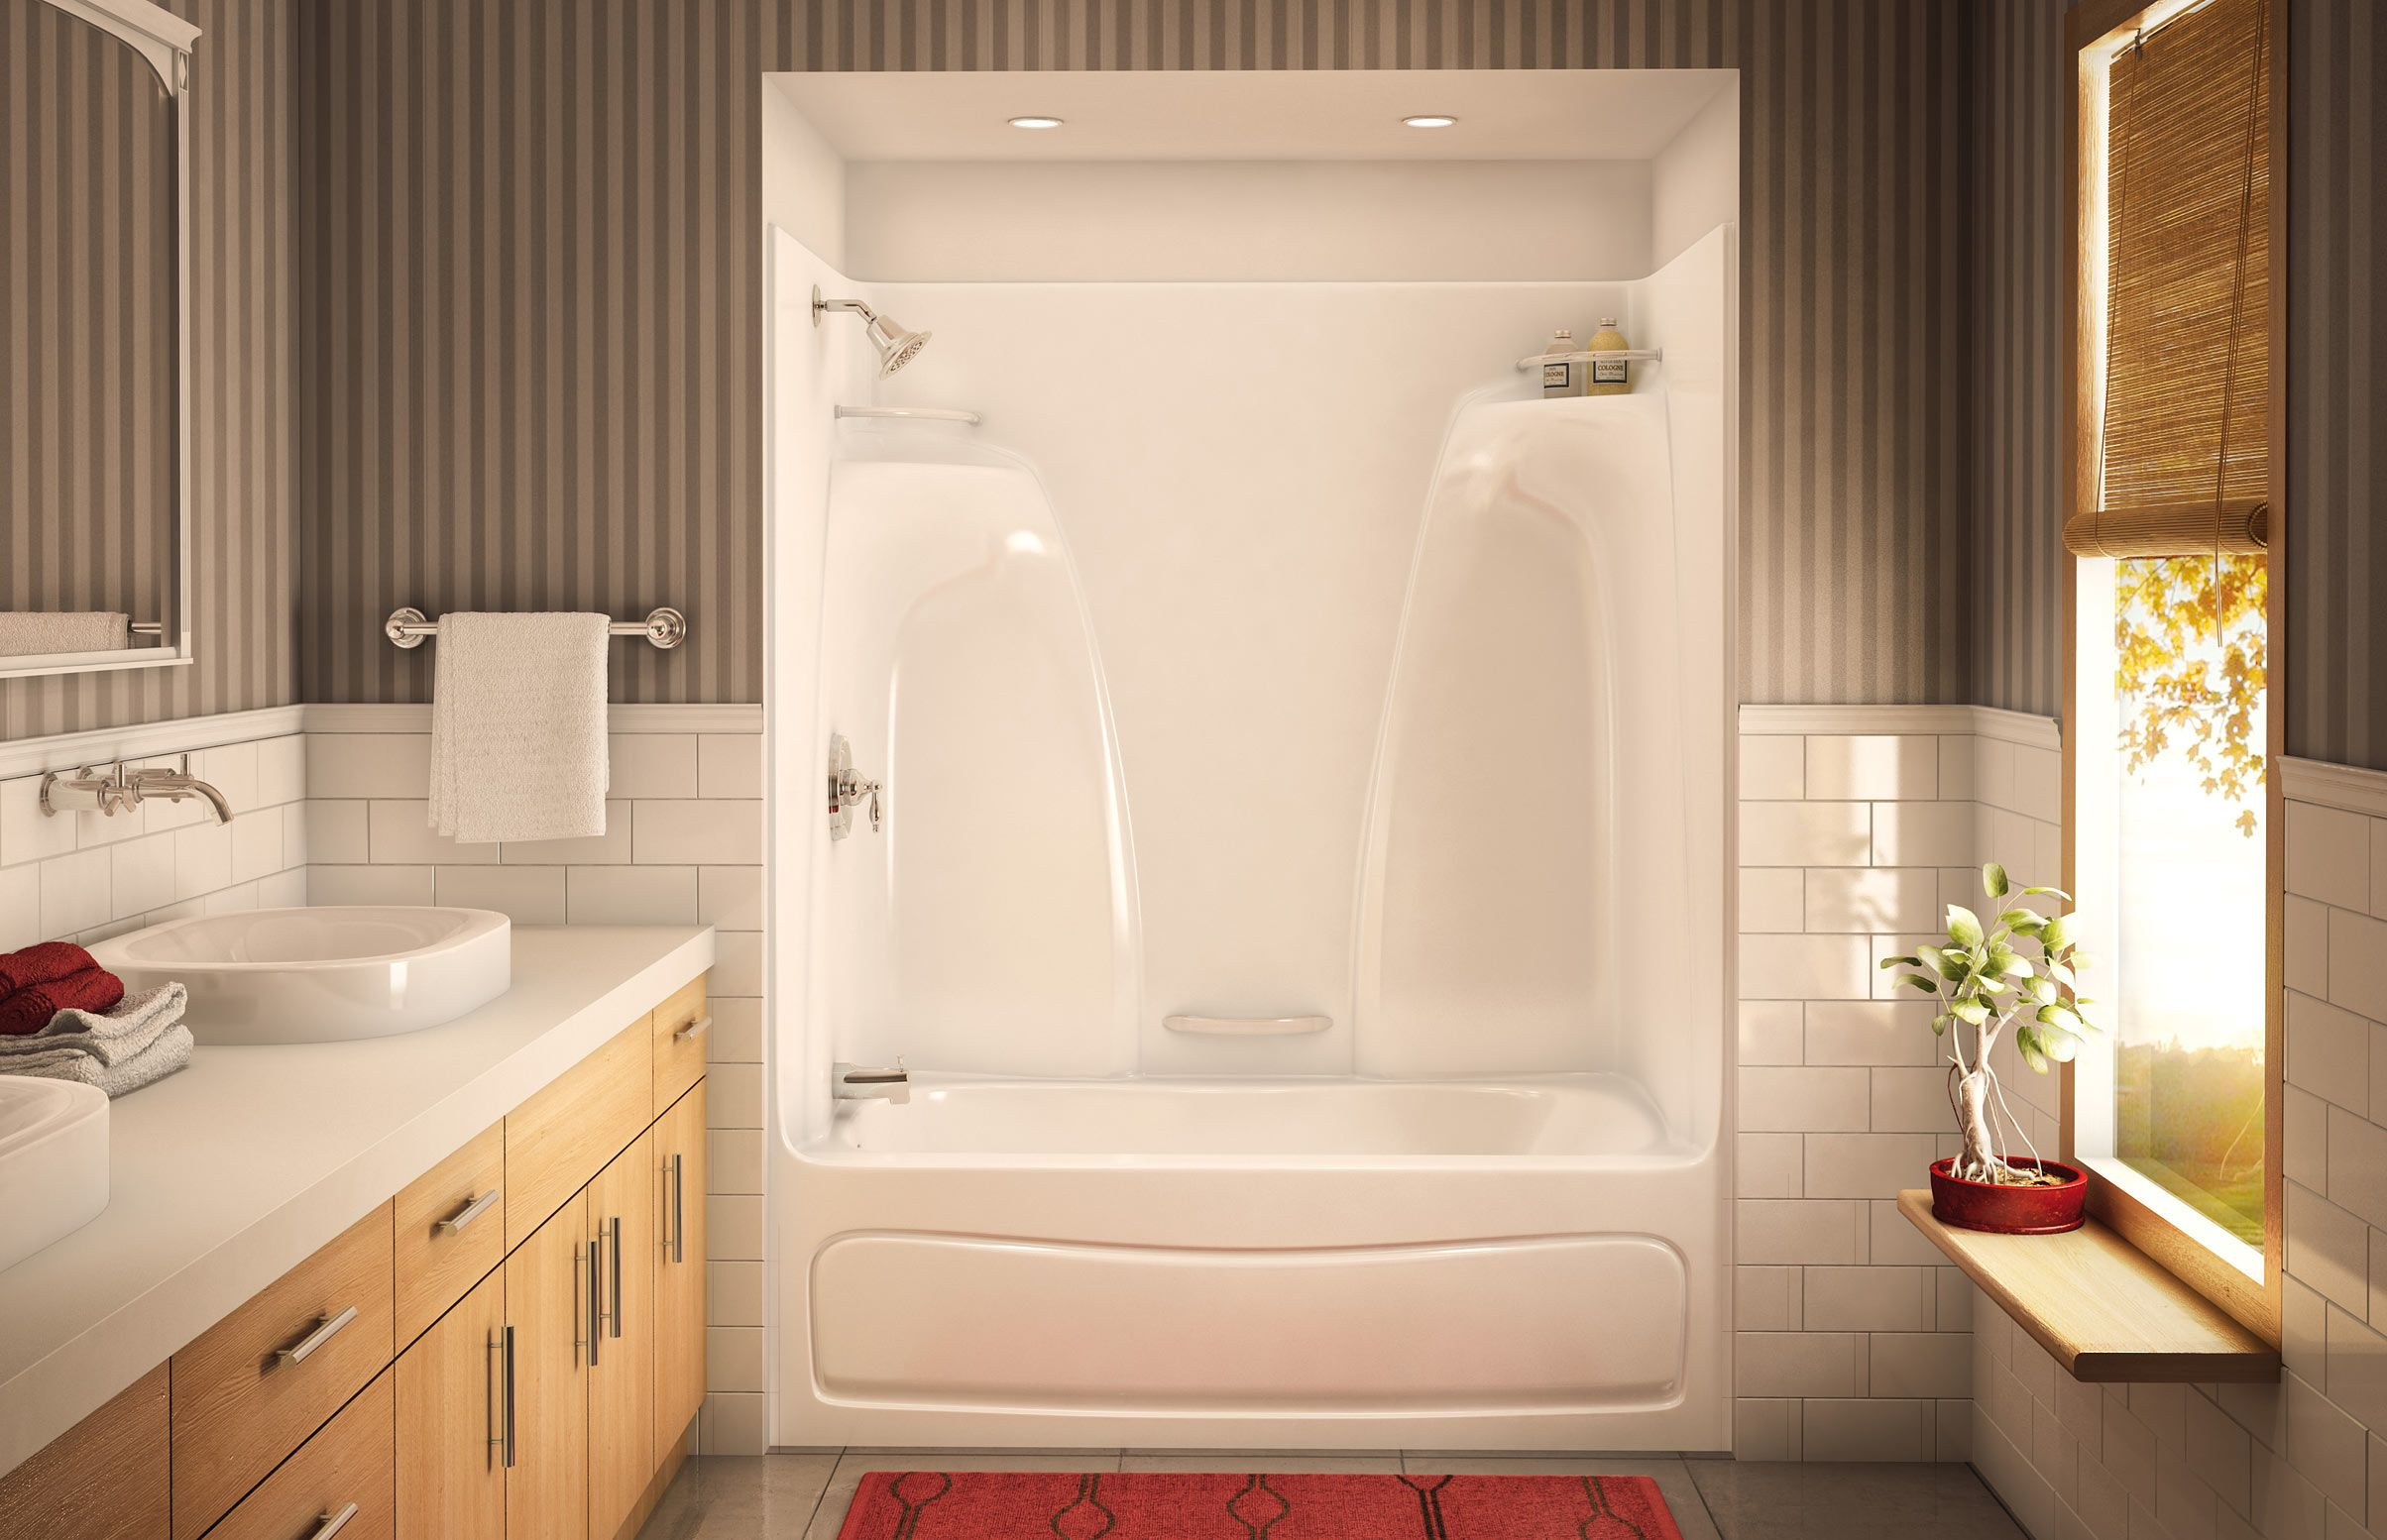 ACTS-3360 Alcove or Tub showers bathtub - Aker by MAAX | cottage ...